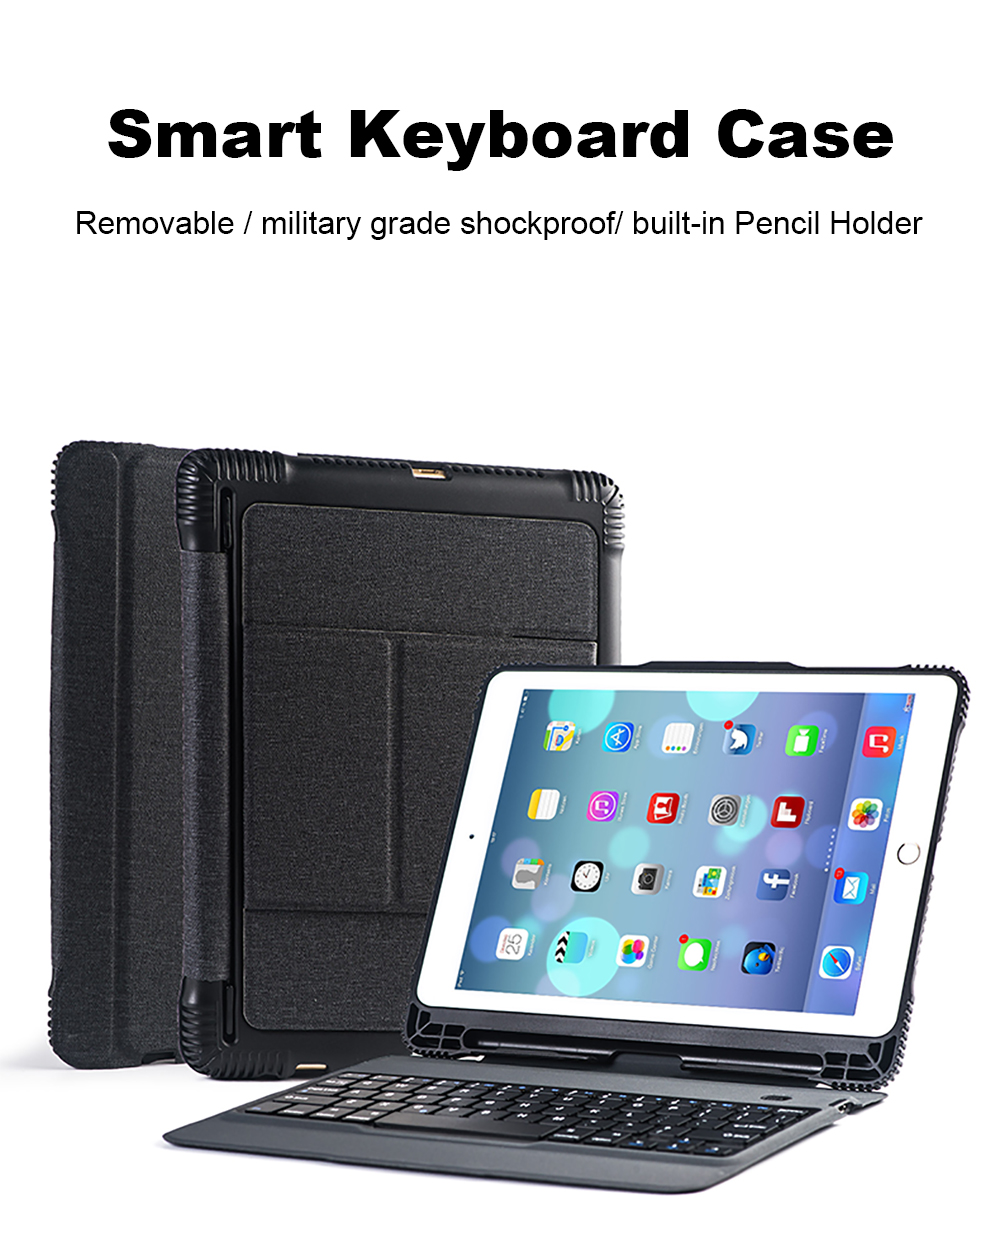 Smart Keyboard Case For iPad 2018 2017 5th 6th Air 1 2 Detachable Design Wireless Bluetooth Teclado Cover For iPad Pro 10.5 9 (11)